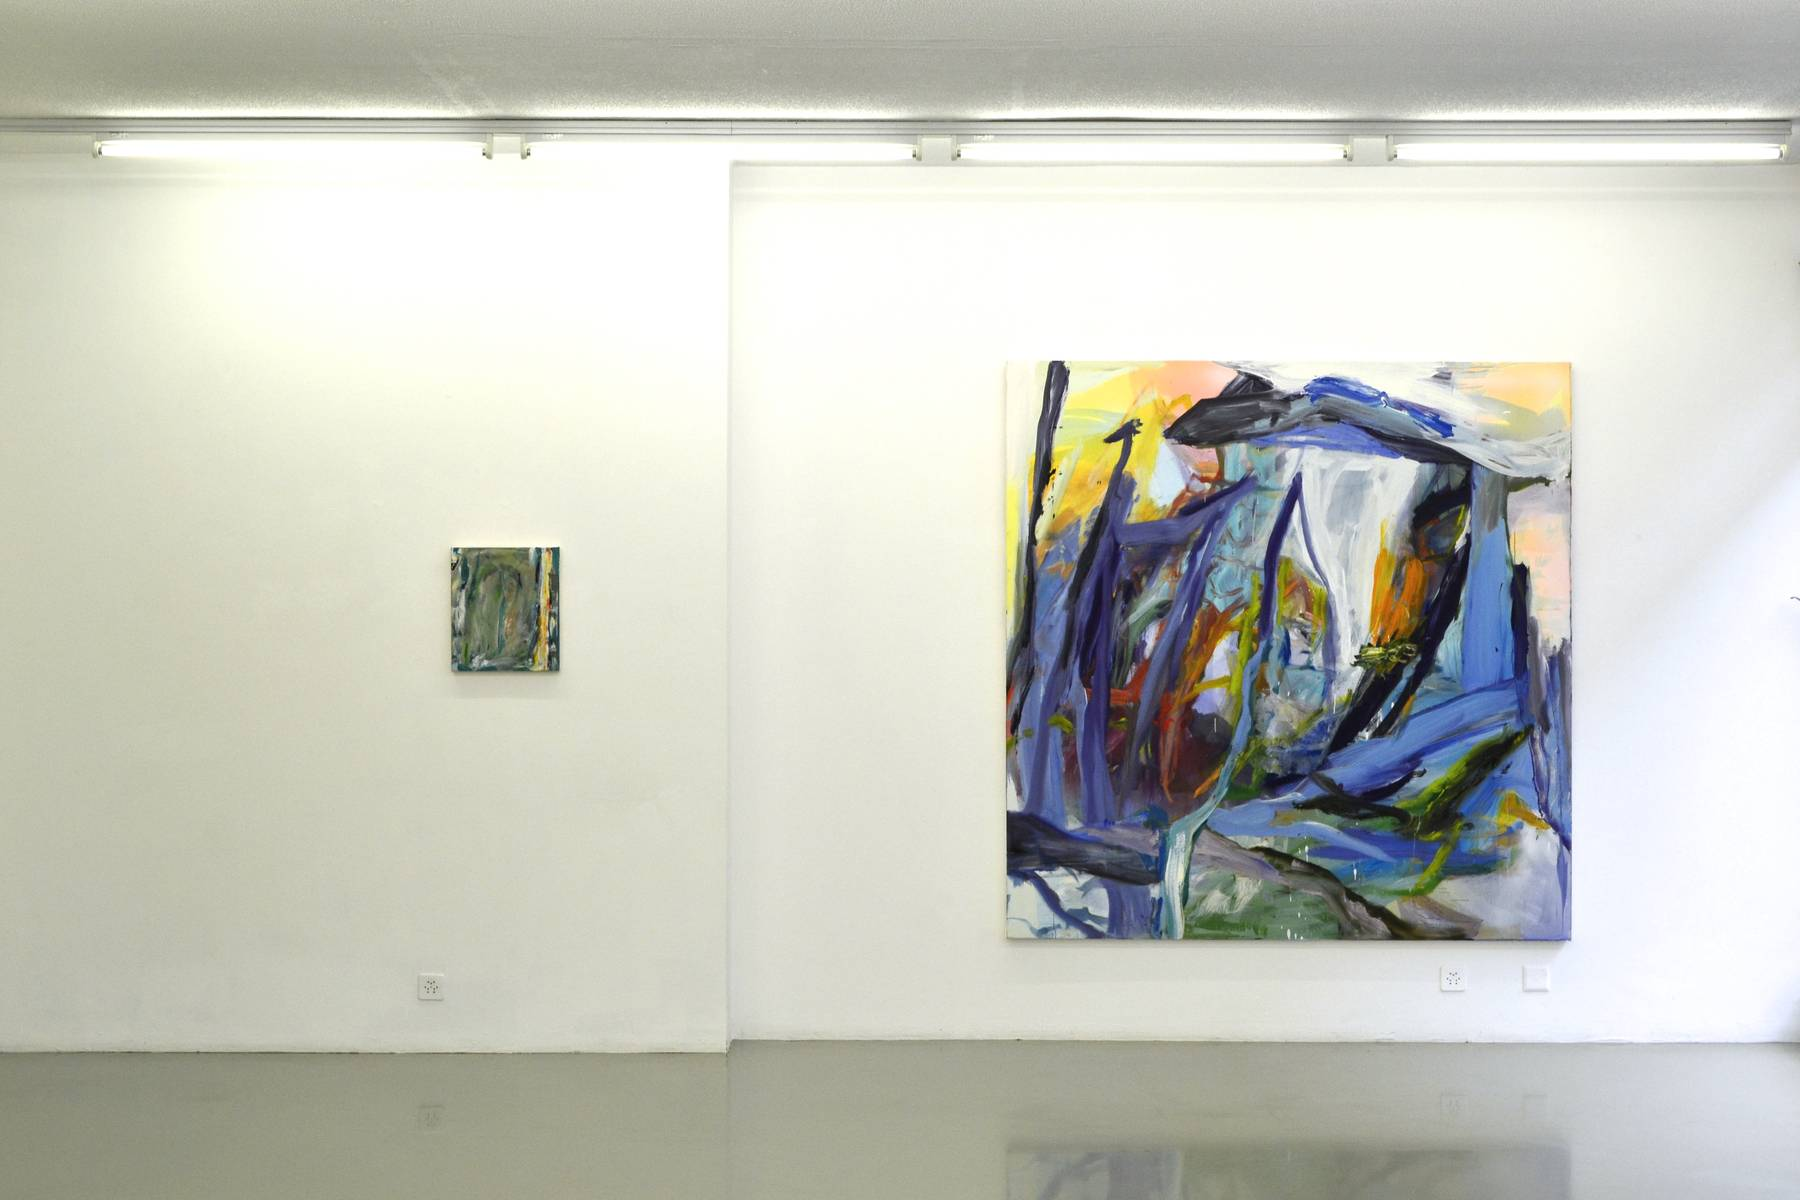 3_Wallace Whitney QUEL 2014 geneve 158